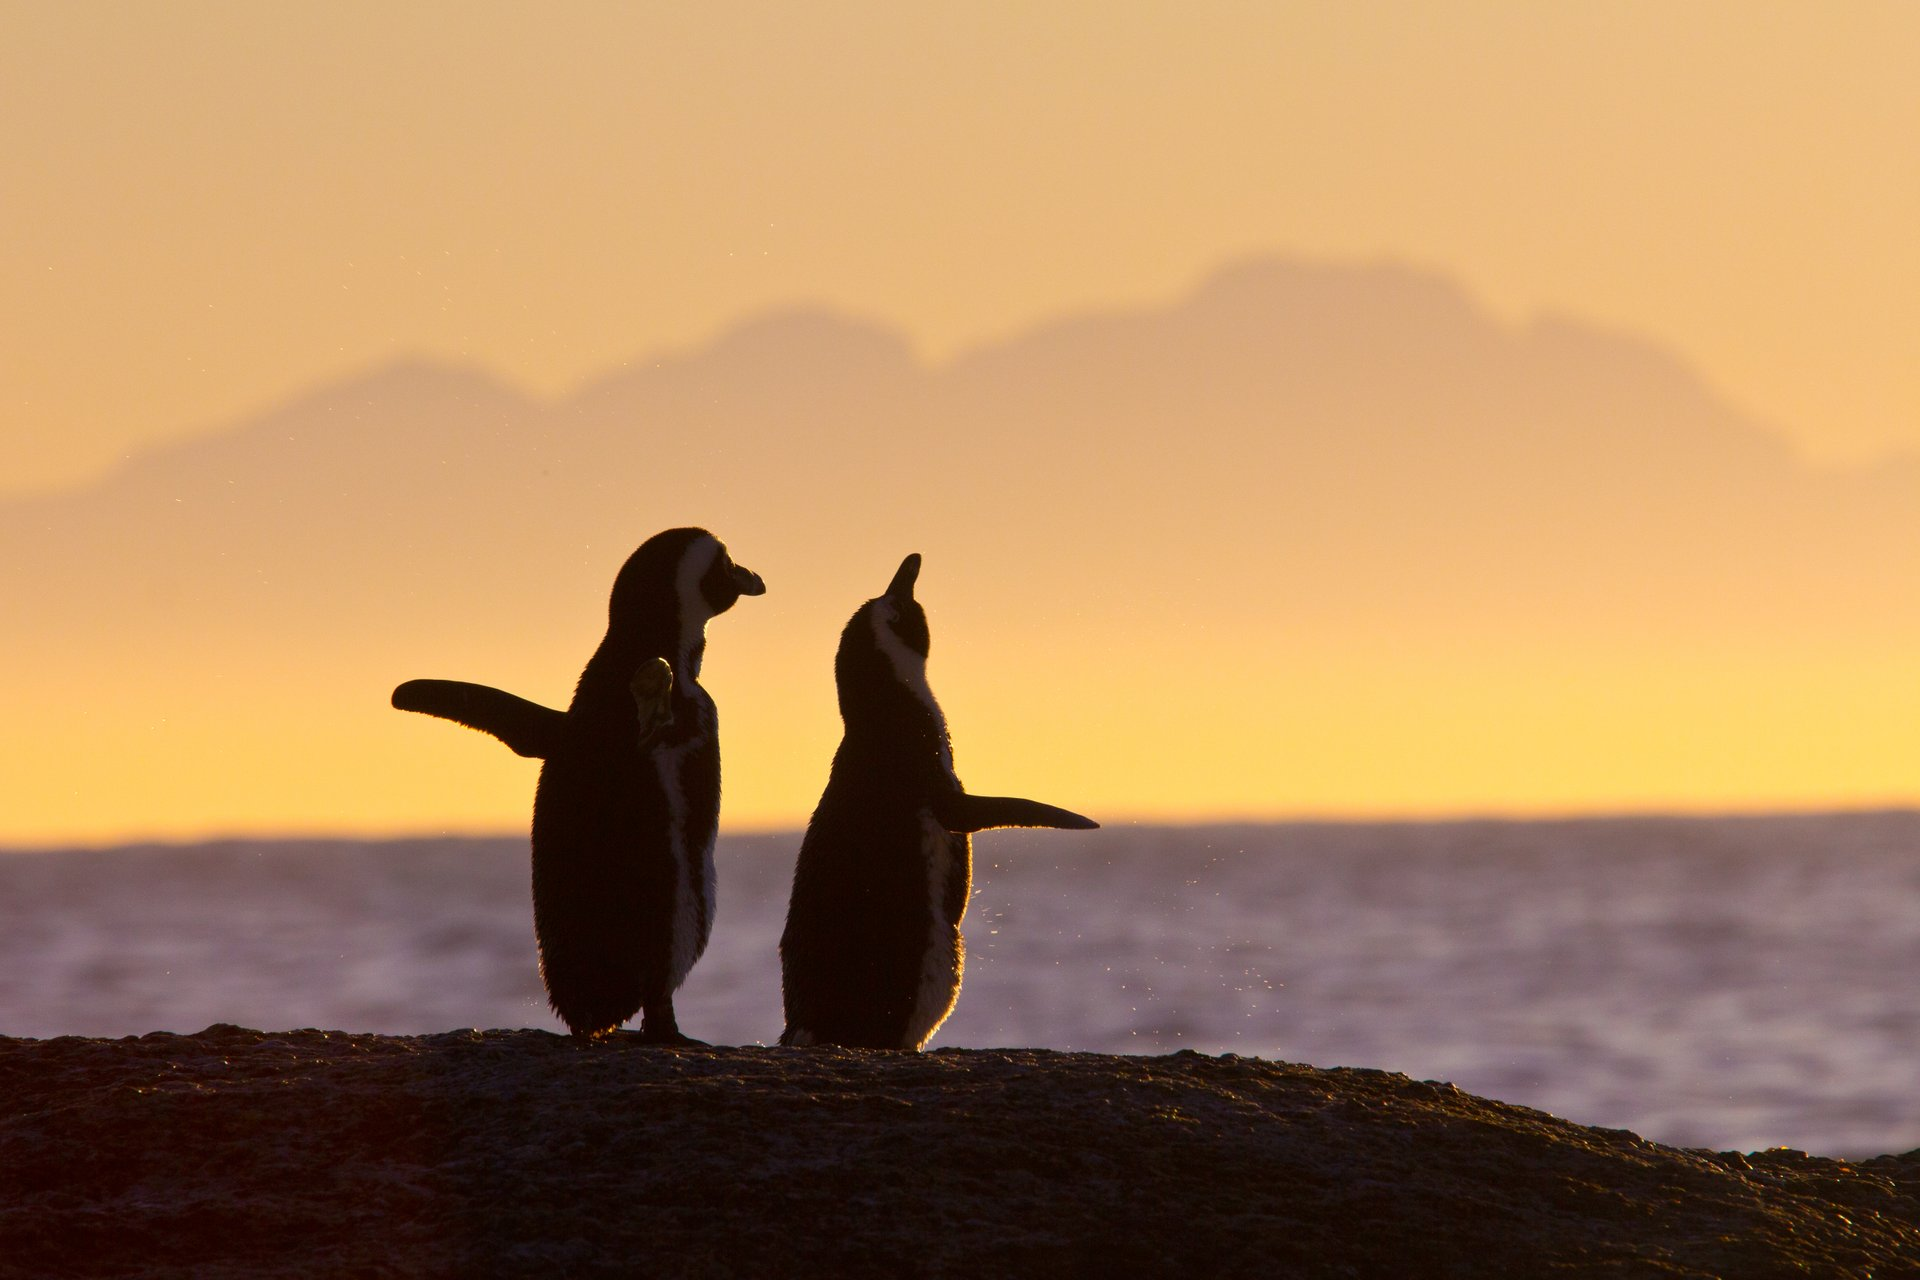 Playful Penguins Watching in Cape Town 2019 - Best Time